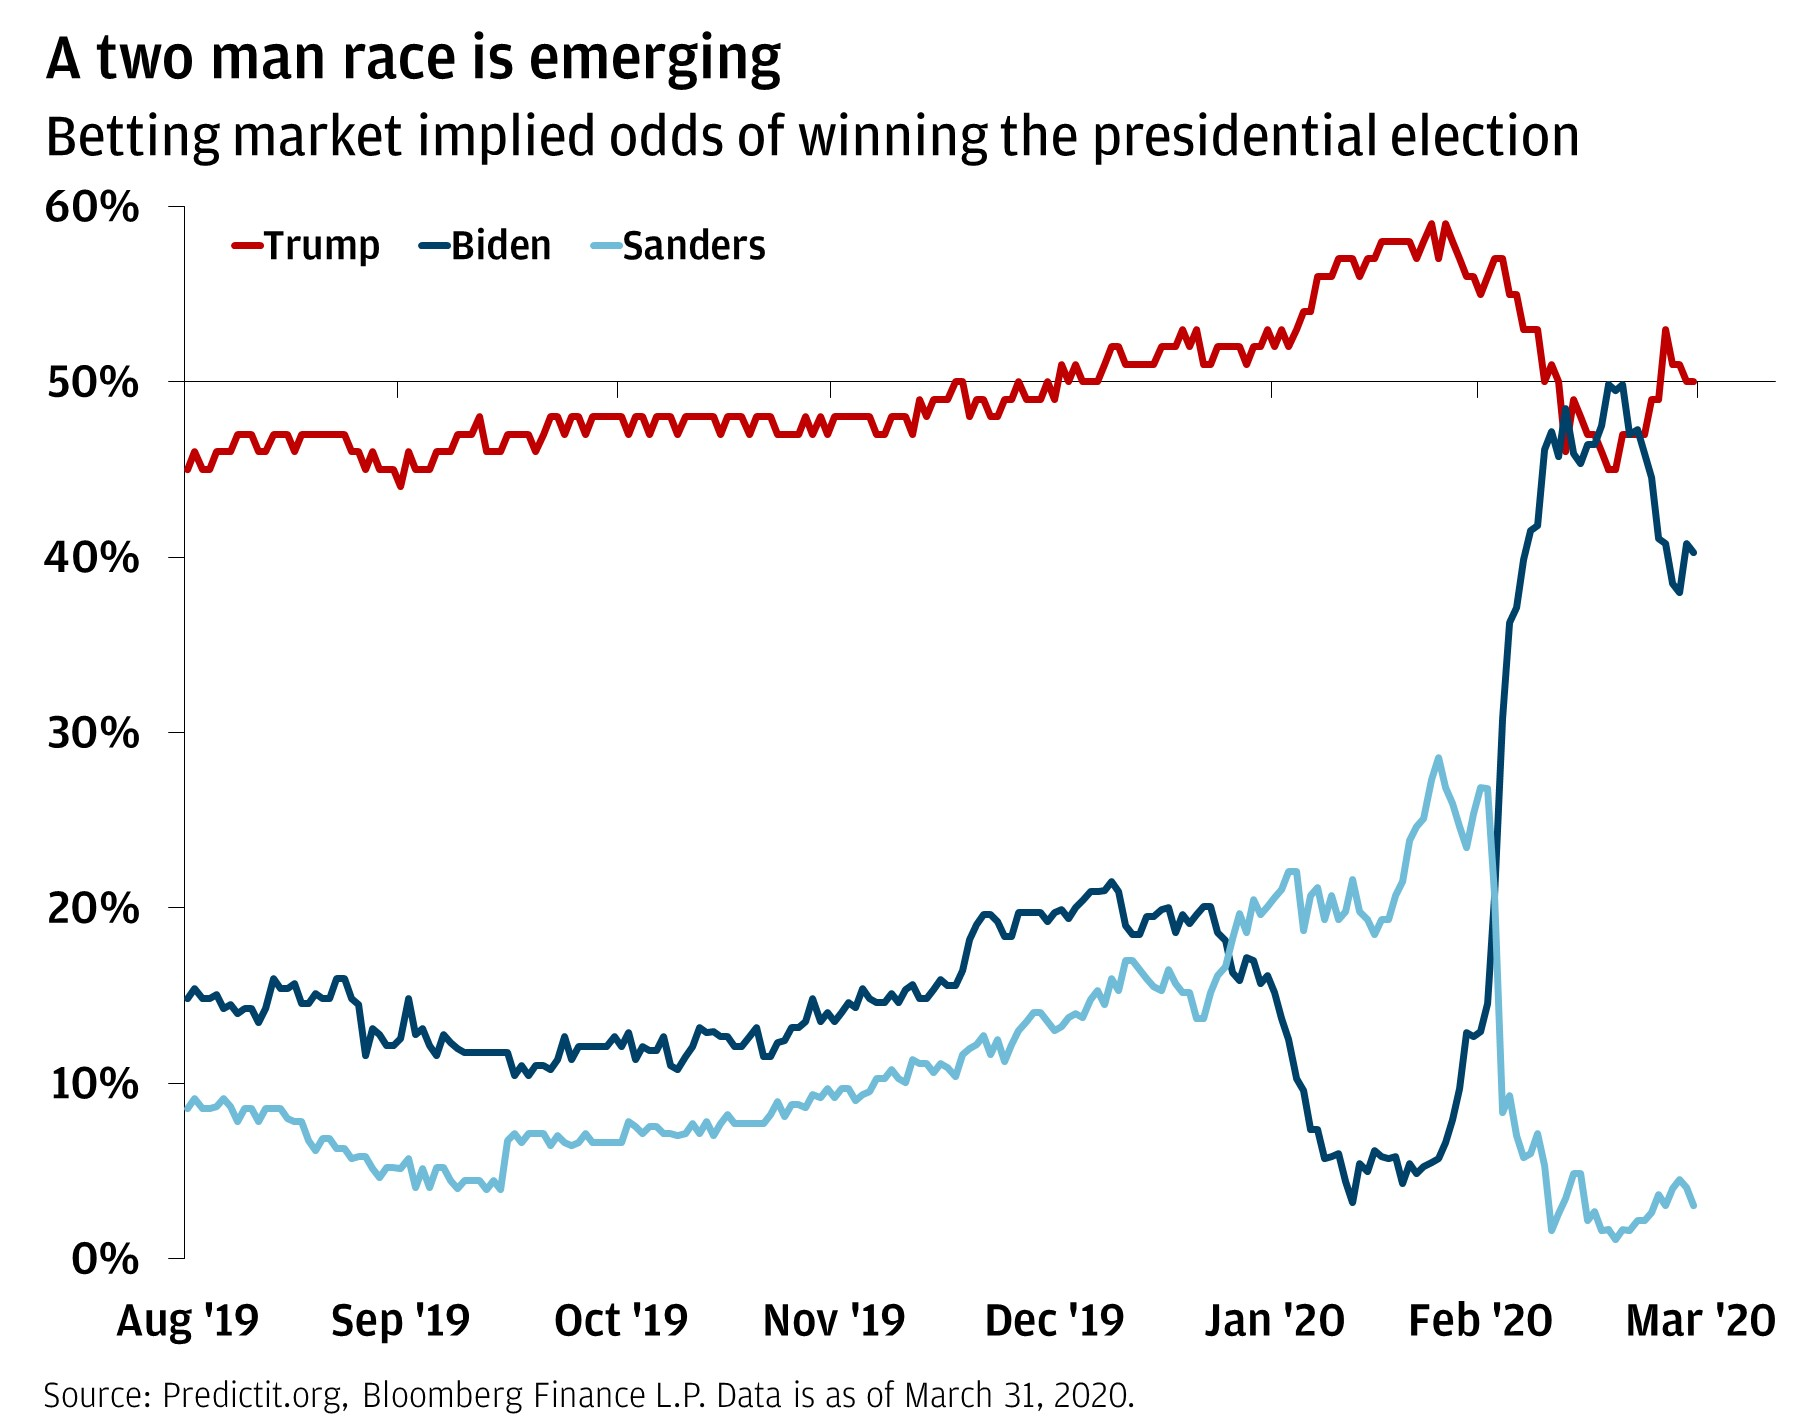 The line chart shows the betting market implied odds of Trump, Biden or Sanders winning the U.S. election from August 2019 through March 31, 2020. It shows that Sanders's odds have drastically decreased, and currently Trump has the highest odds of winning.